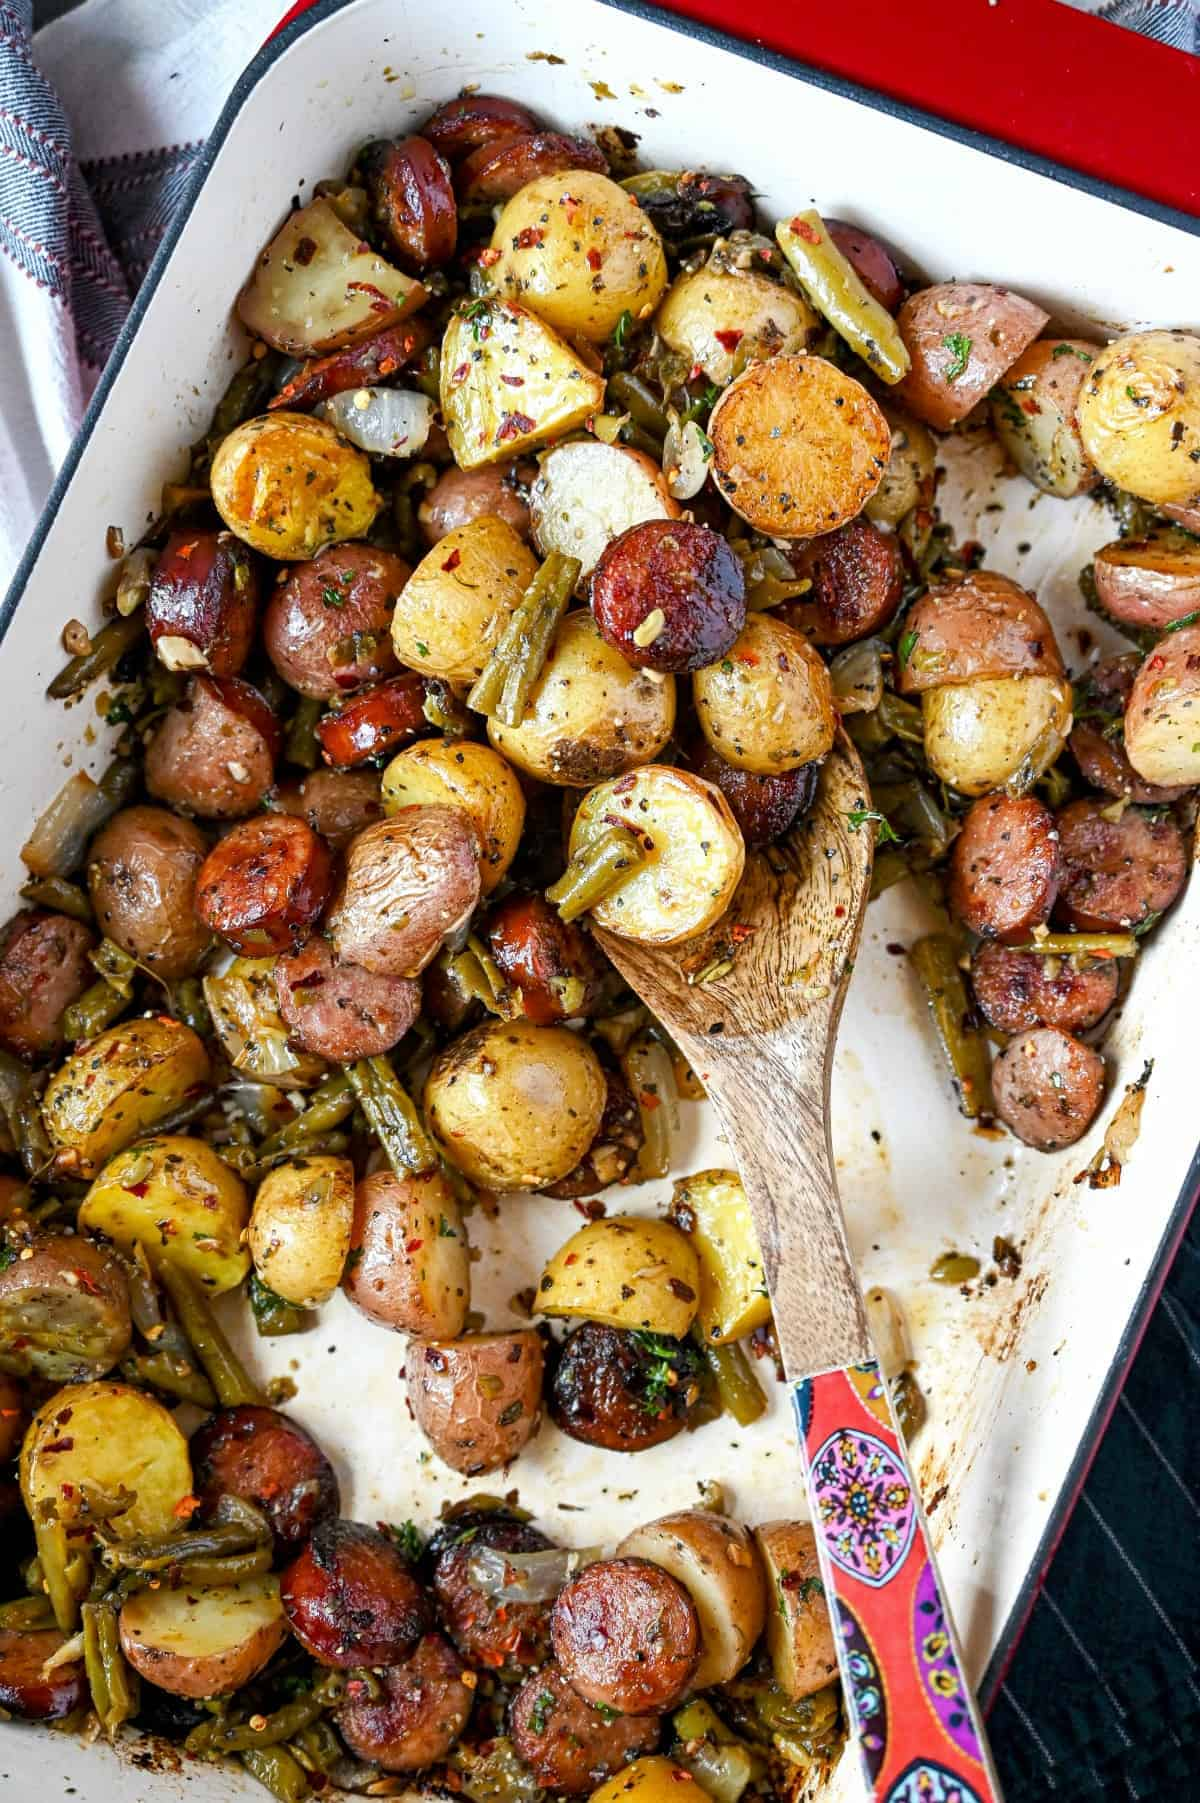 Sausage, green beans and potatoes all in a casserole dish with a wooden spoon.